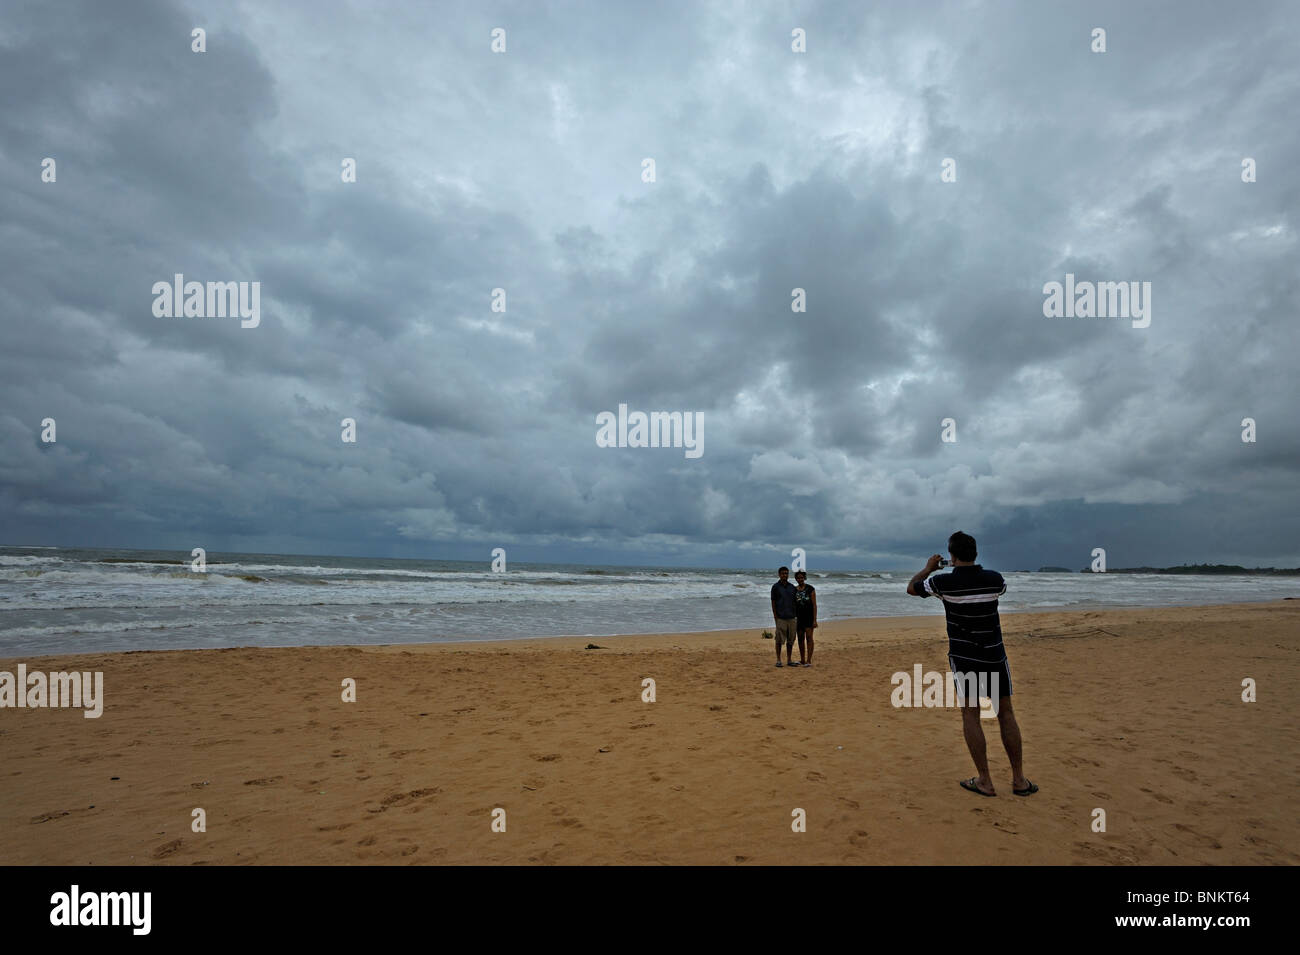 Tourists taking snap shots of each other in Bentota beach in Sri Lanka - Stock Image